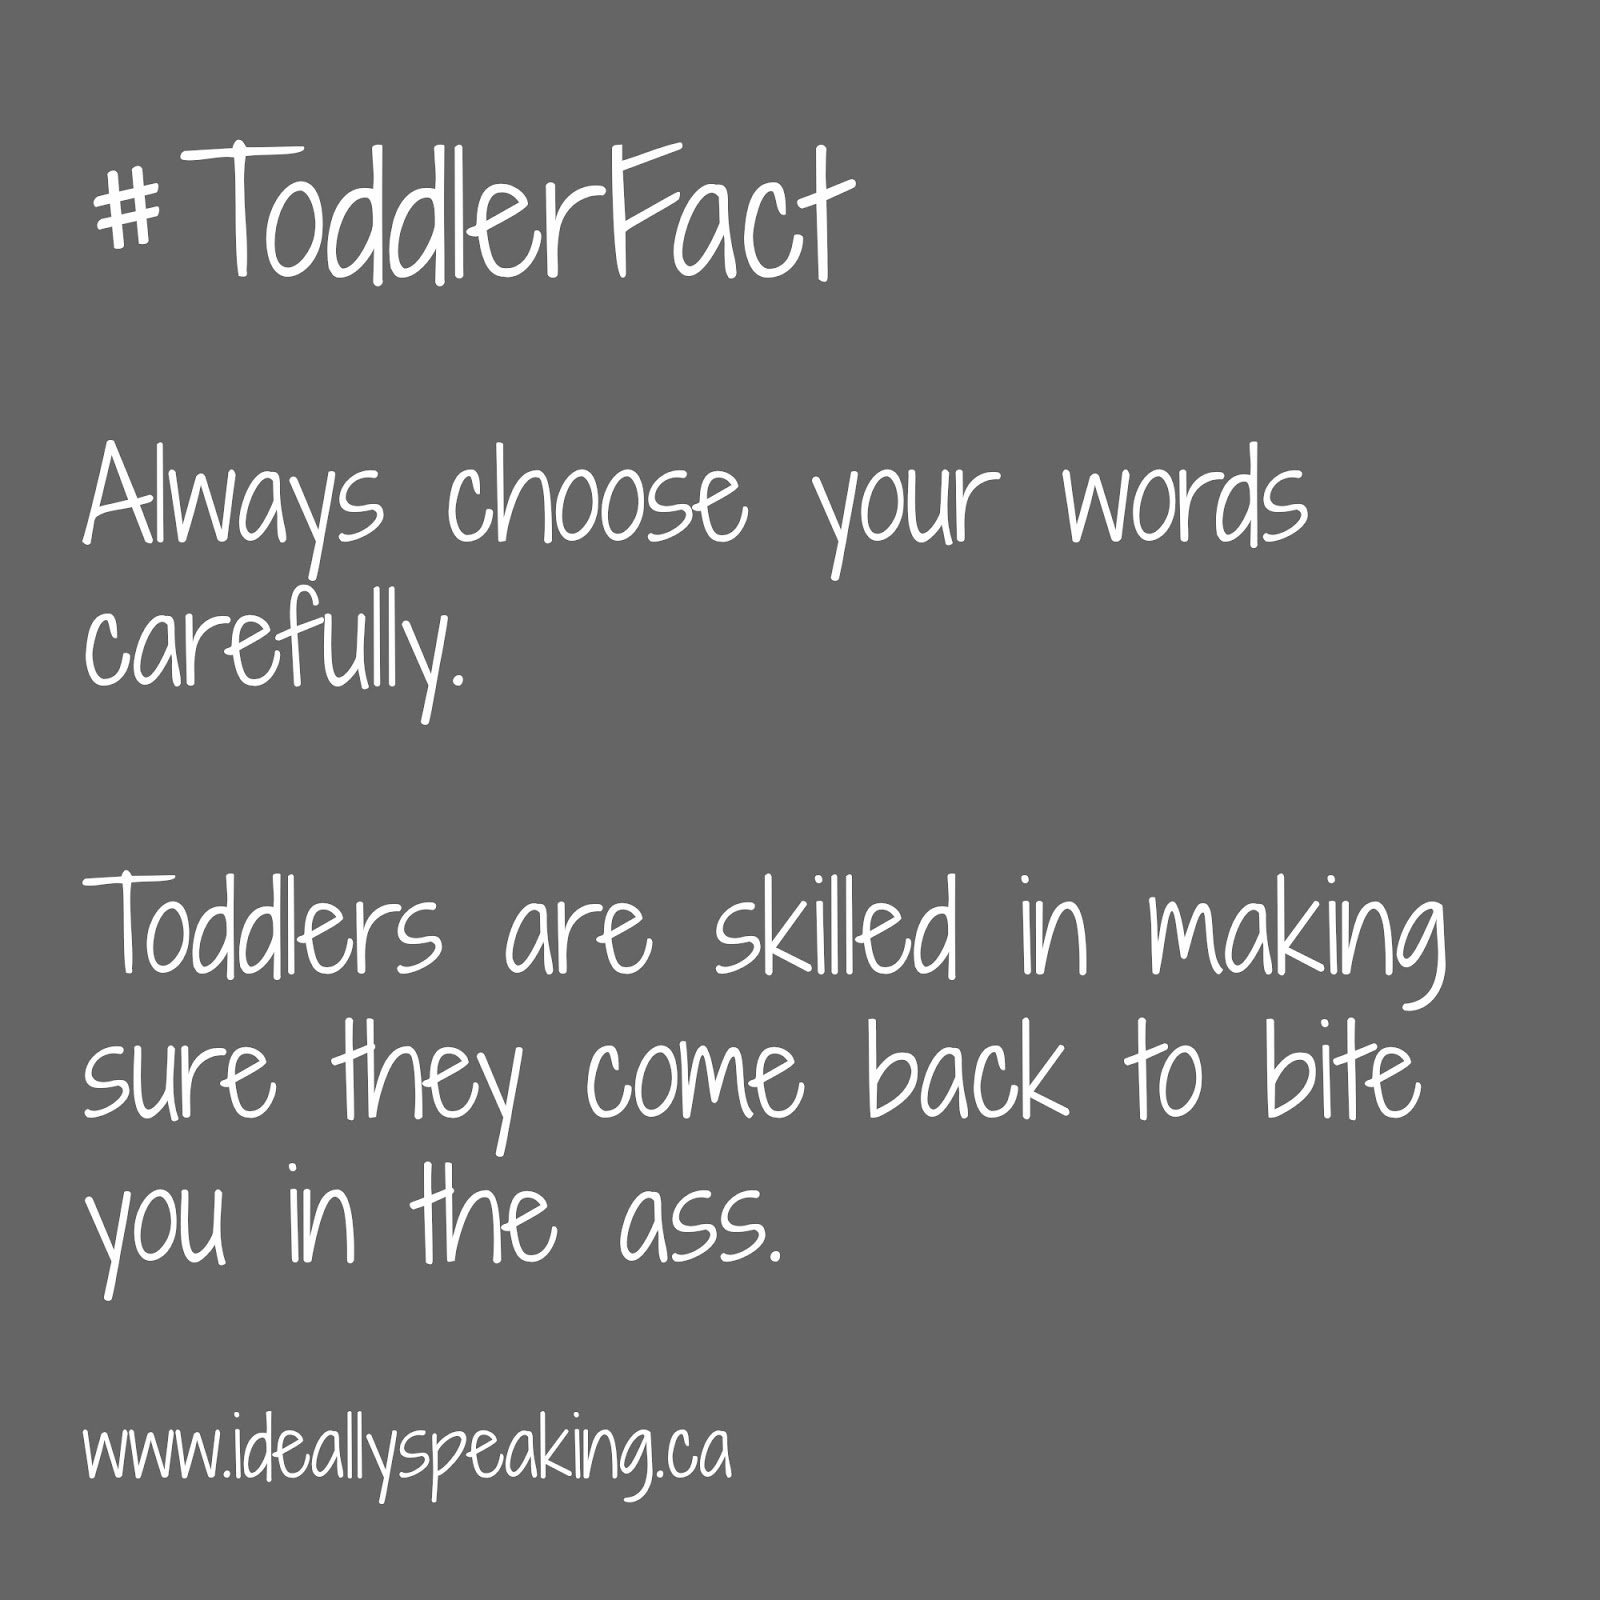 toddler talking back, parening a toddler, funny toddler quote, Canadian mom blogger